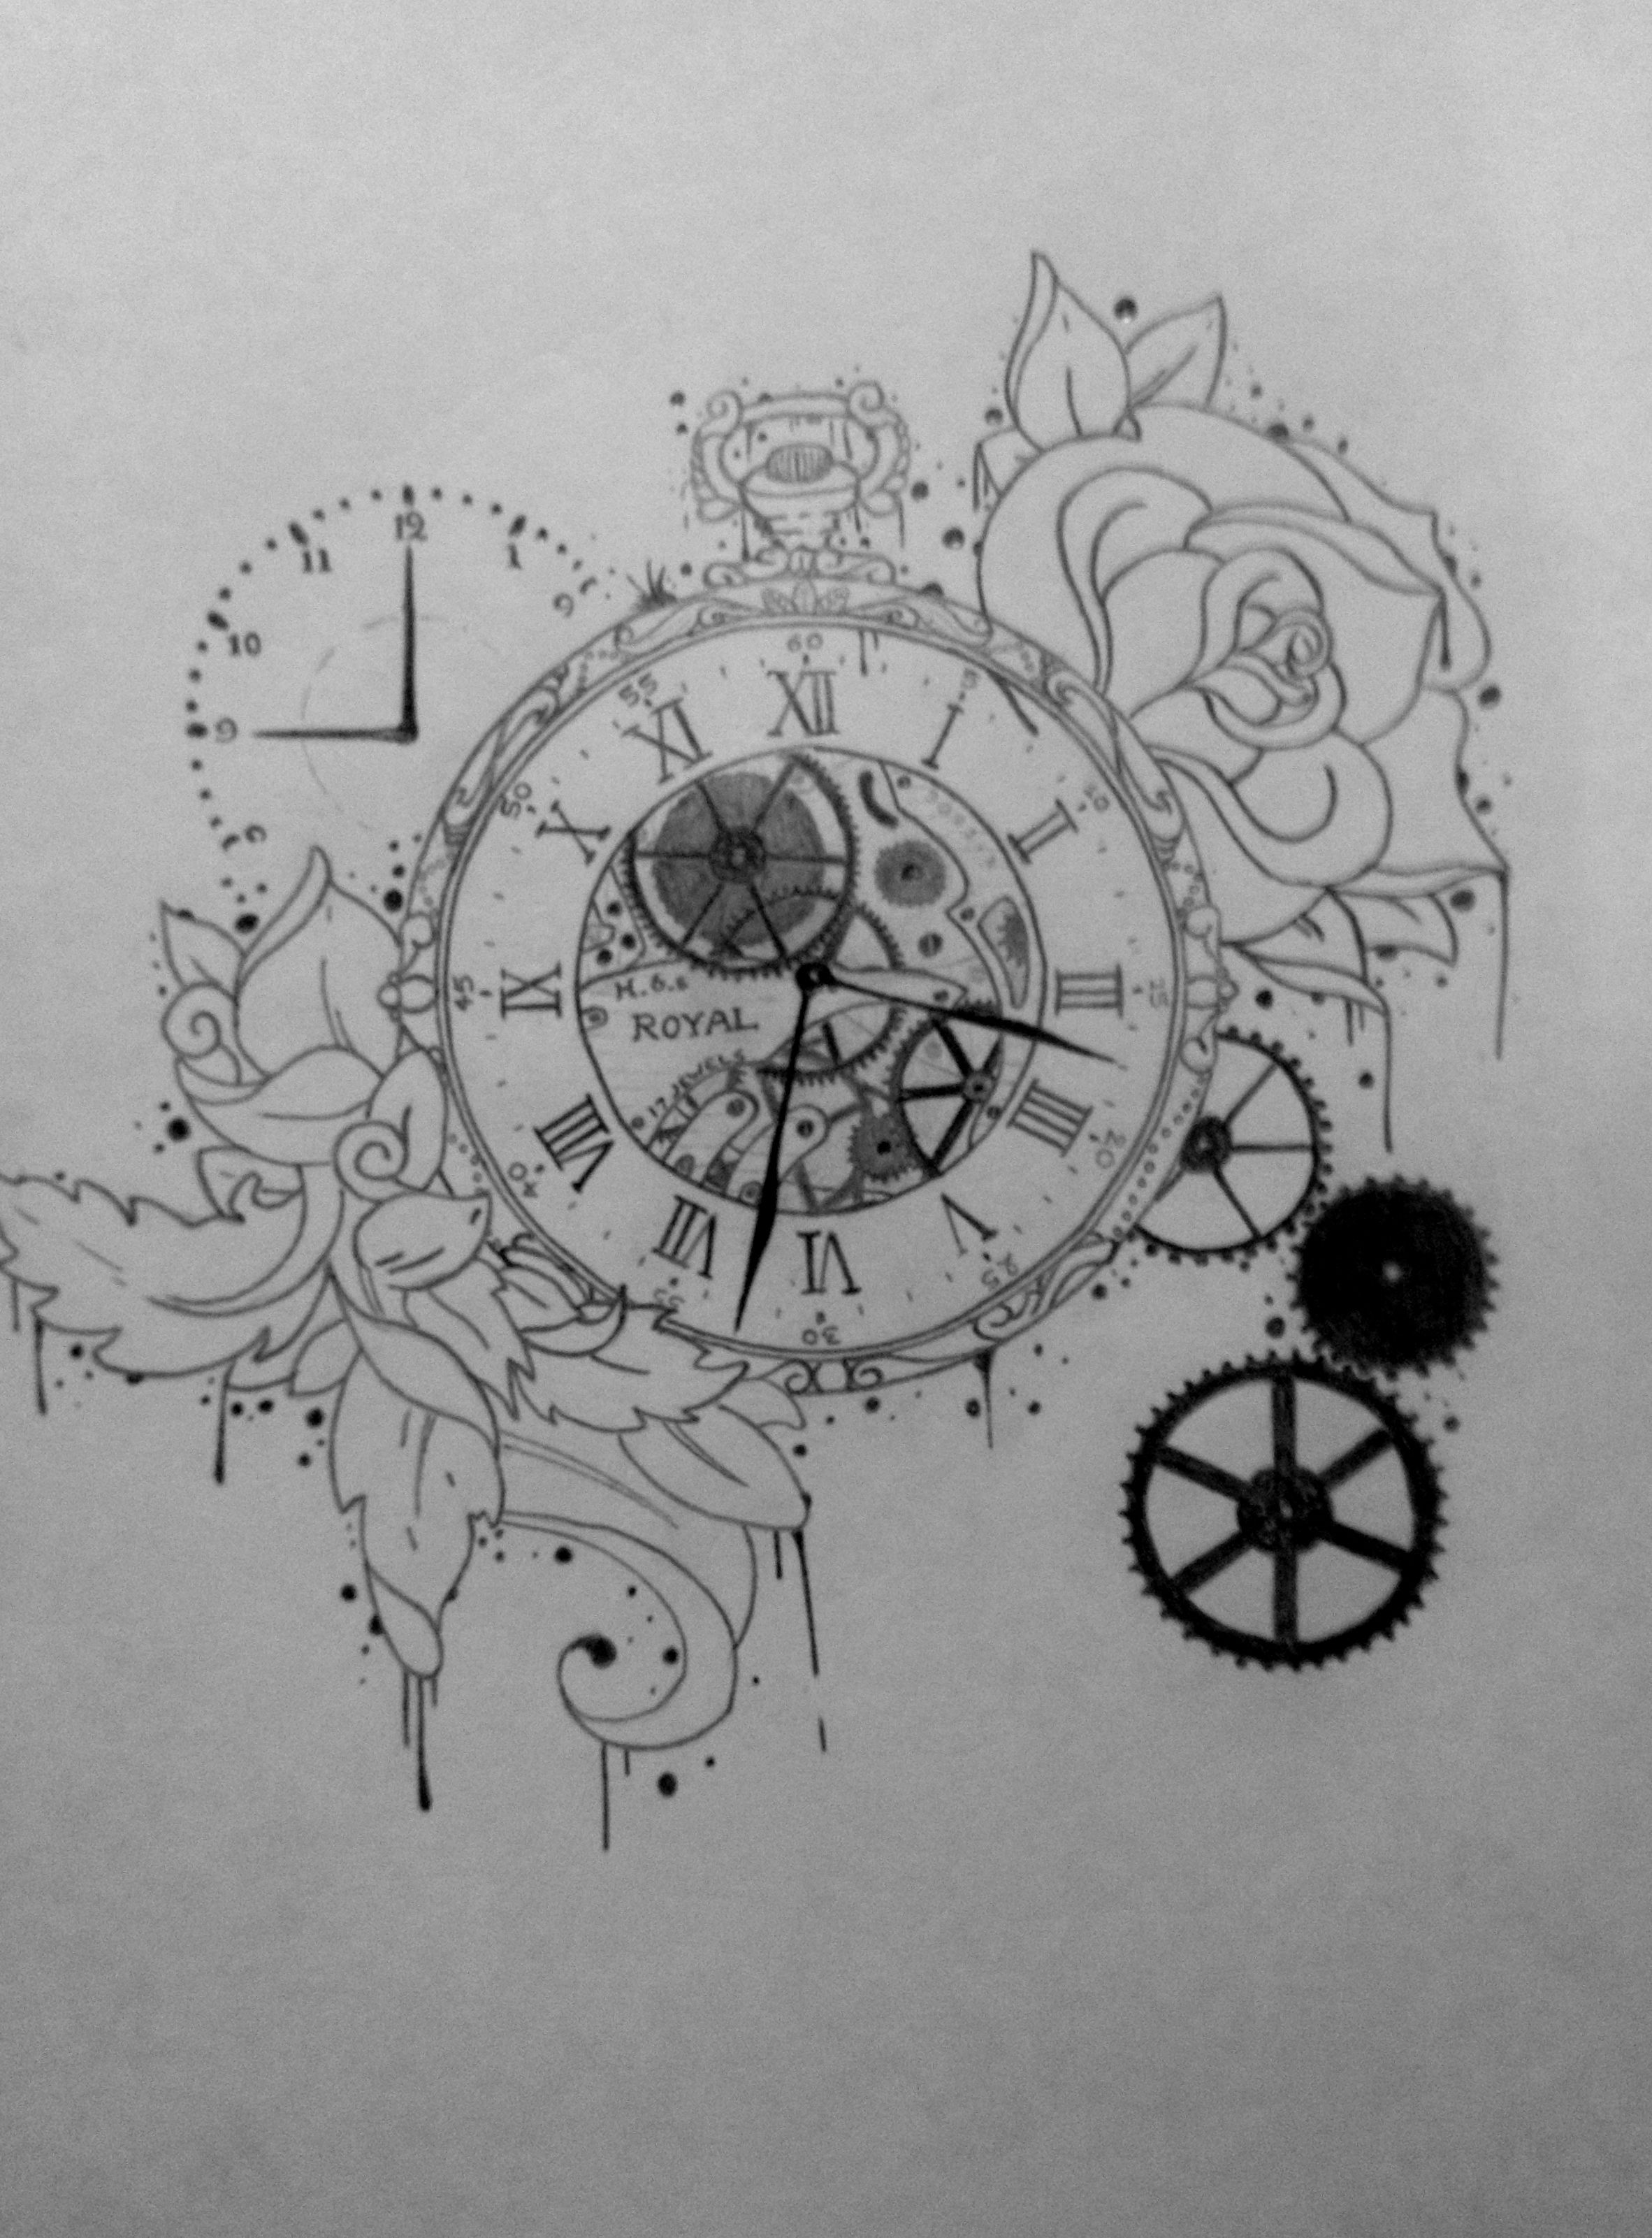 Pocket watch tattoo sketch  Tattoo Illustration, Pocket Watch, Time, Gears, Clock, Rose ...